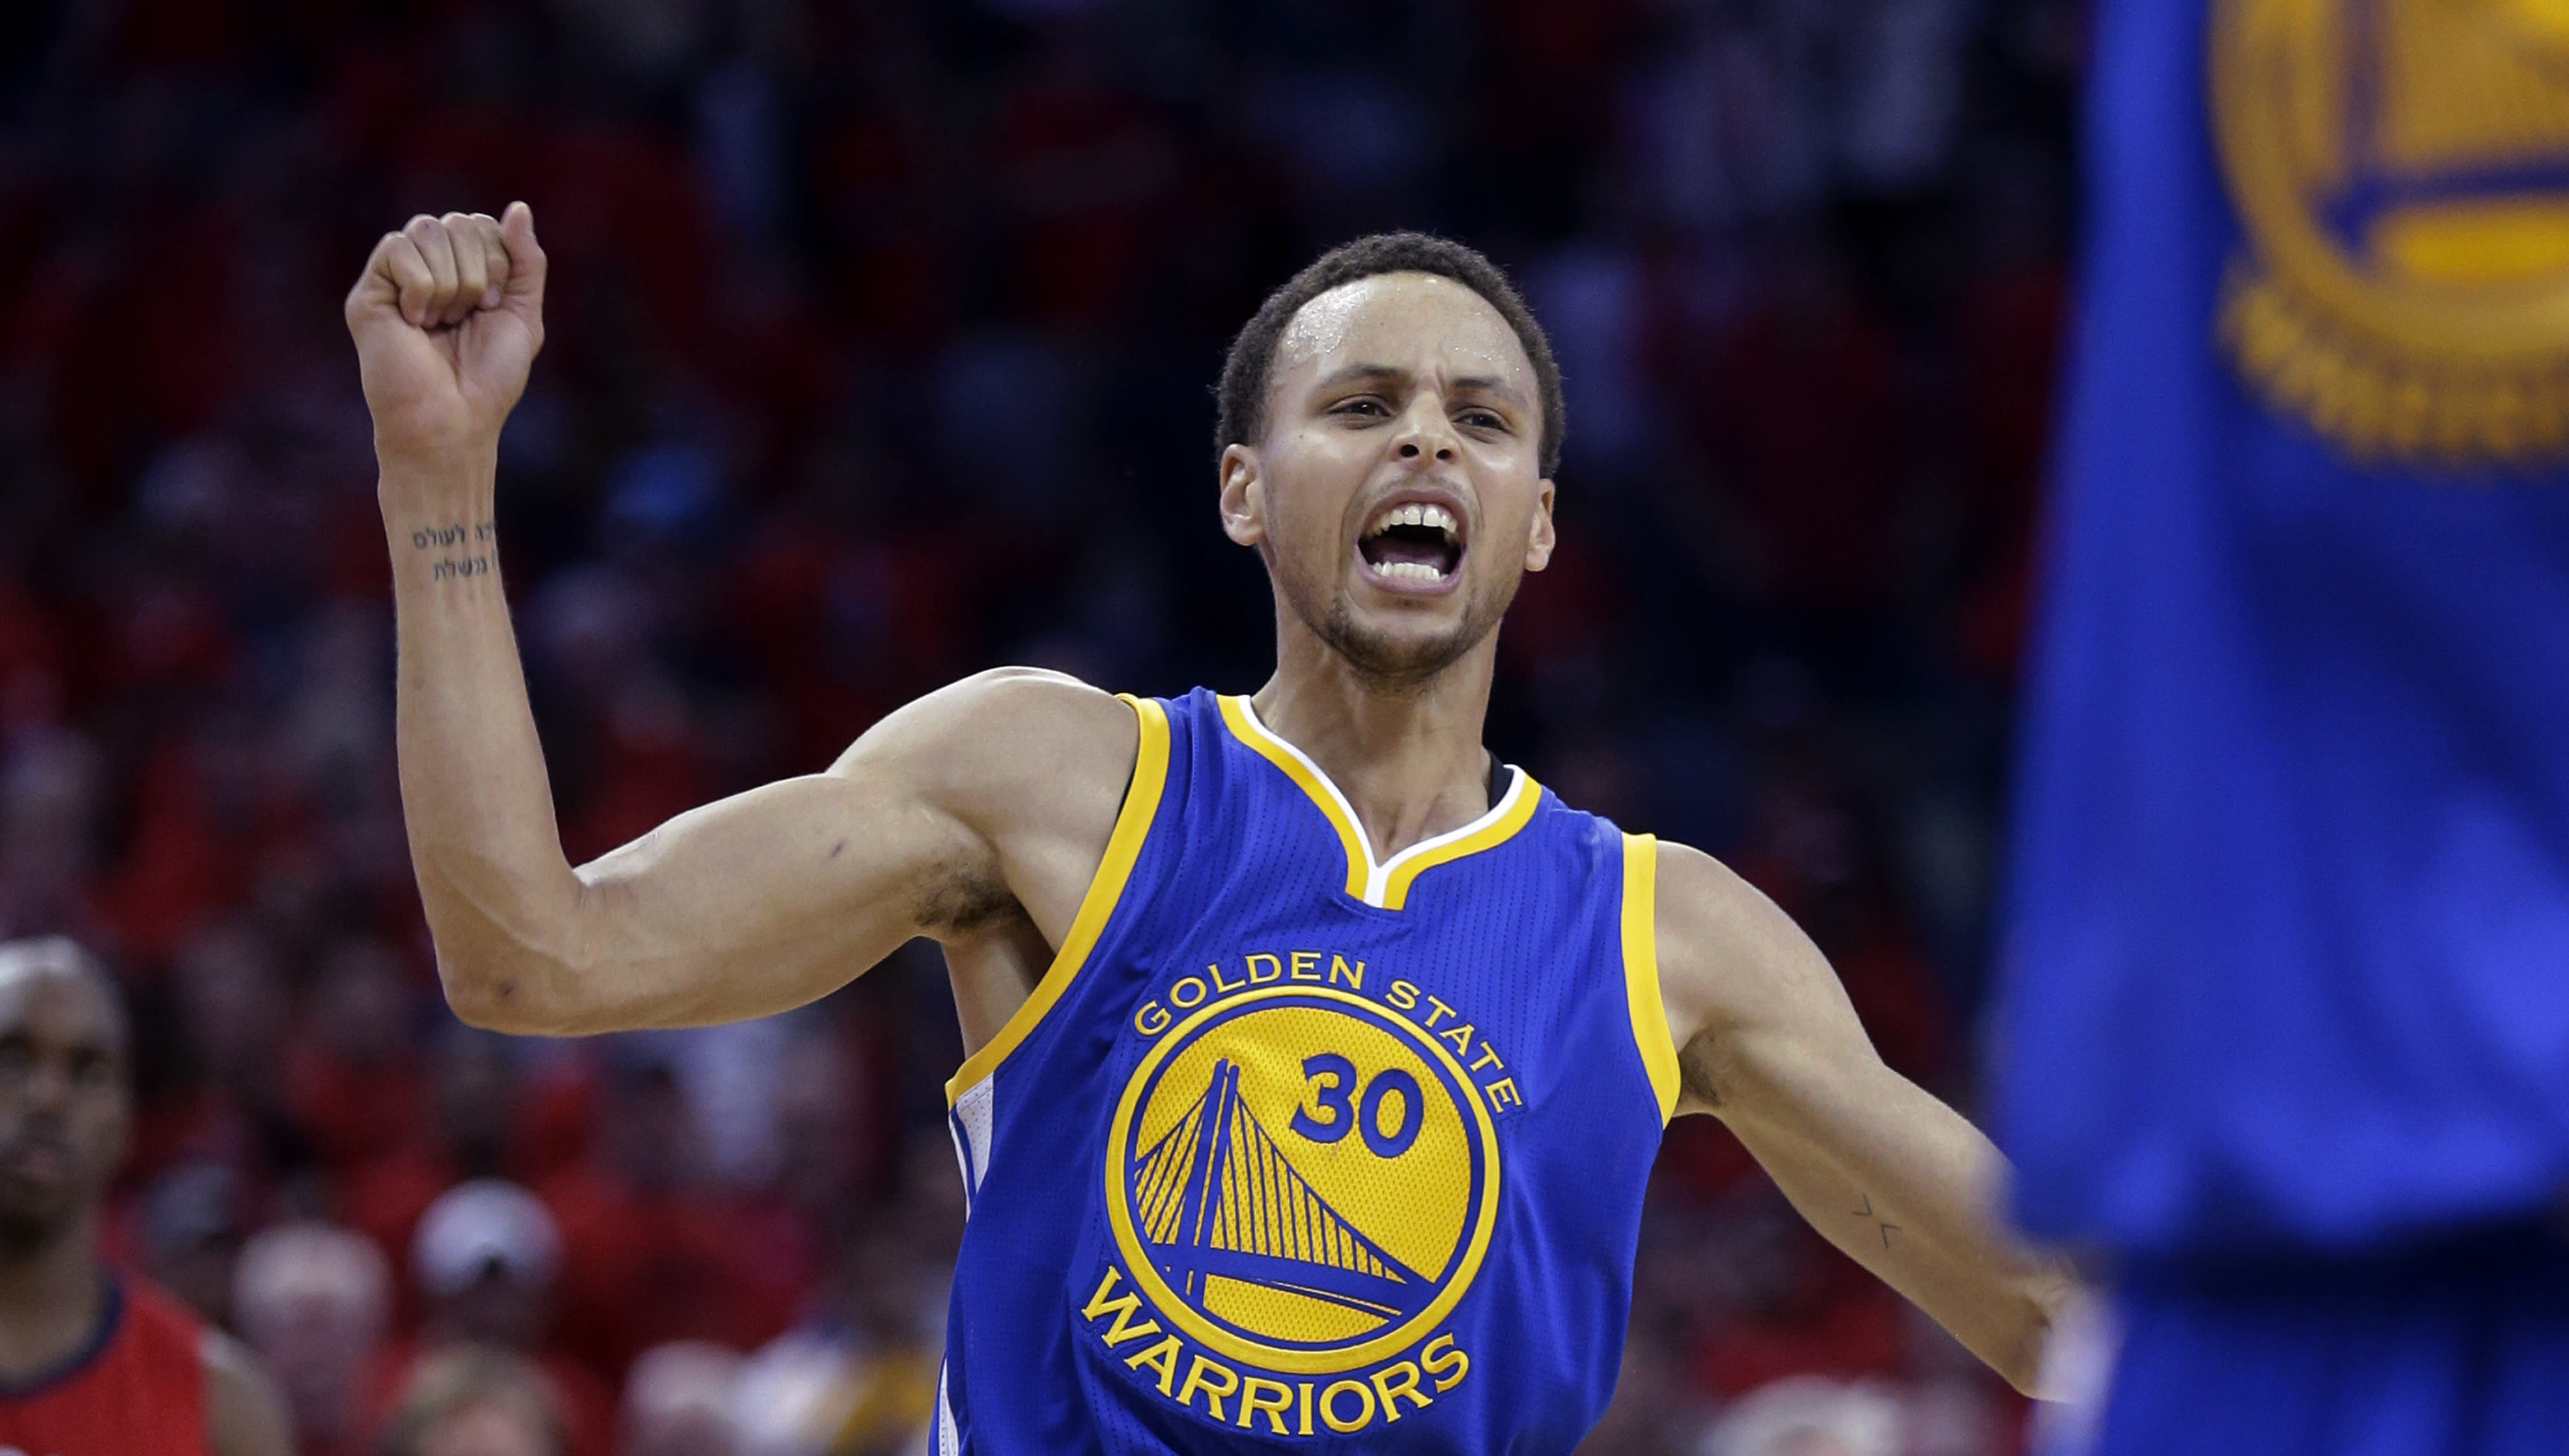 After working OT in NBA playoffs, Curry, Rose can earn rest